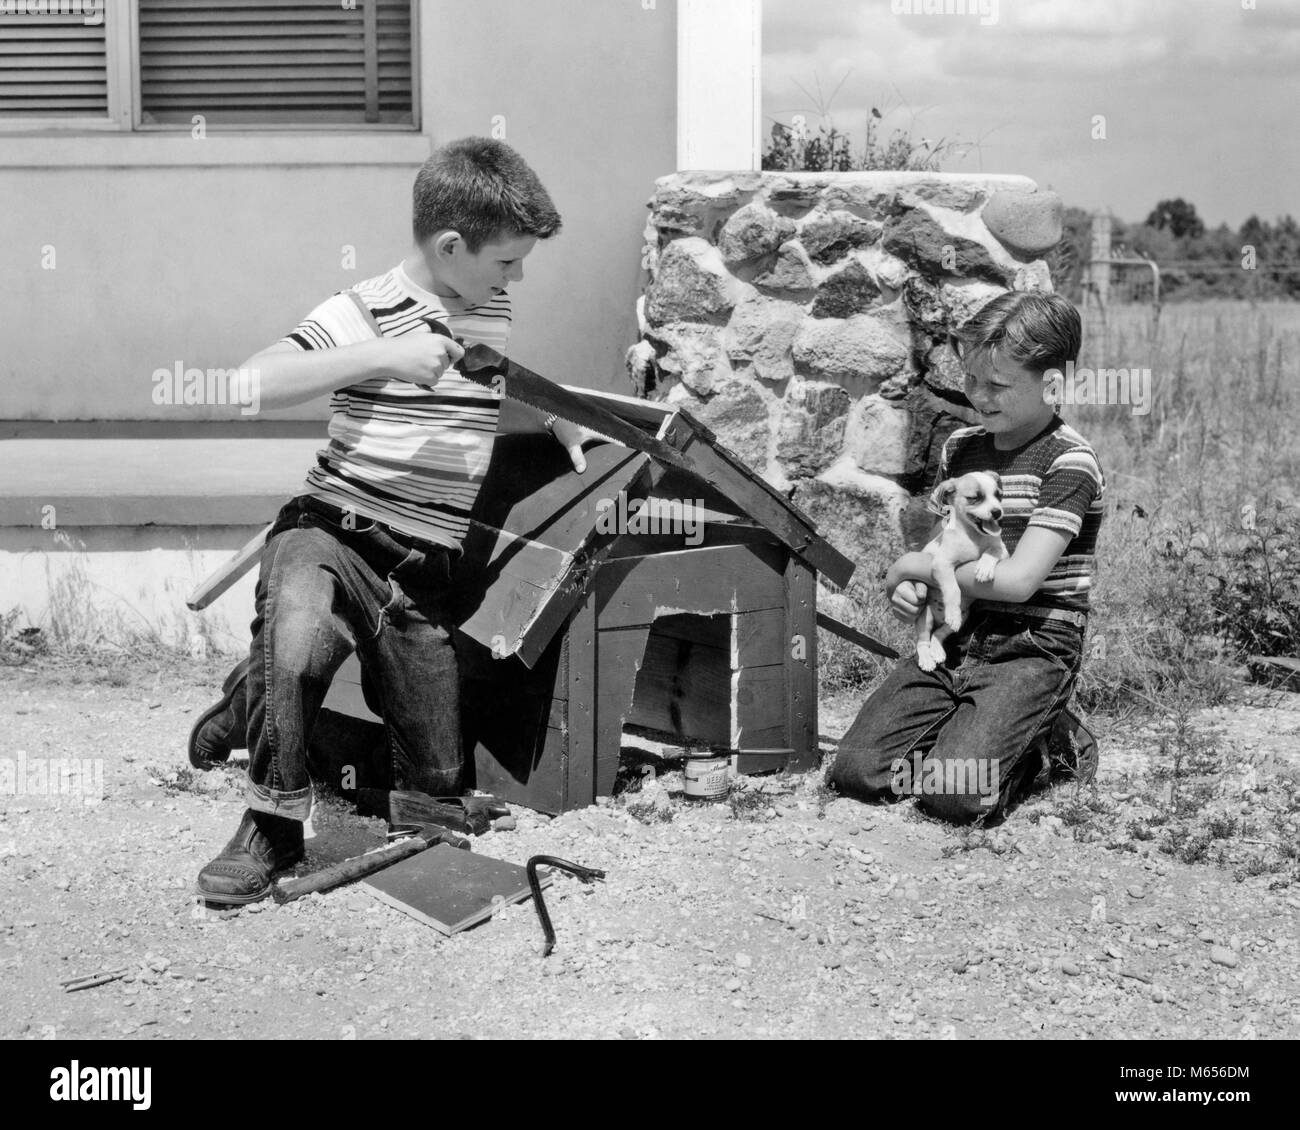 1950s 1960s TWO BOYS BUILDING DOG HOUSE FOR THEIR NEW PUPPY DOG - d2720 HAR001 HARS TOGETHERNESS 10-12 YEARS 7-9 - Stock Image